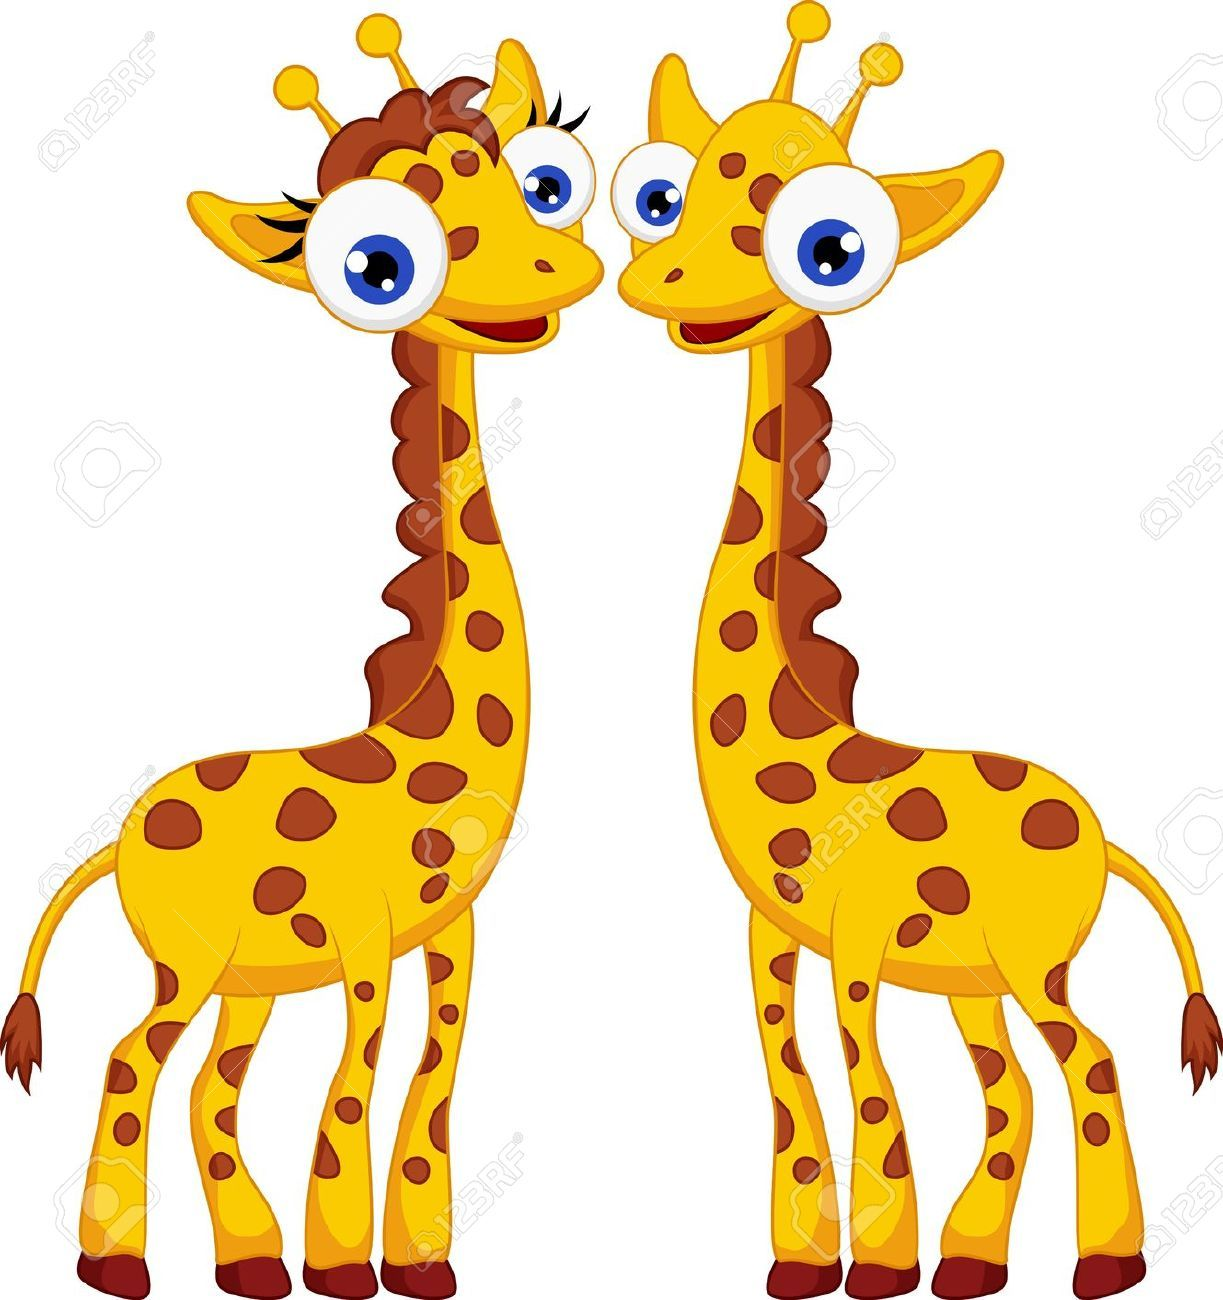 giraffe clipart at getdrawings com free for personal use giraffe rh getdrawings com giraffe clip art images giraffe clipart black and white